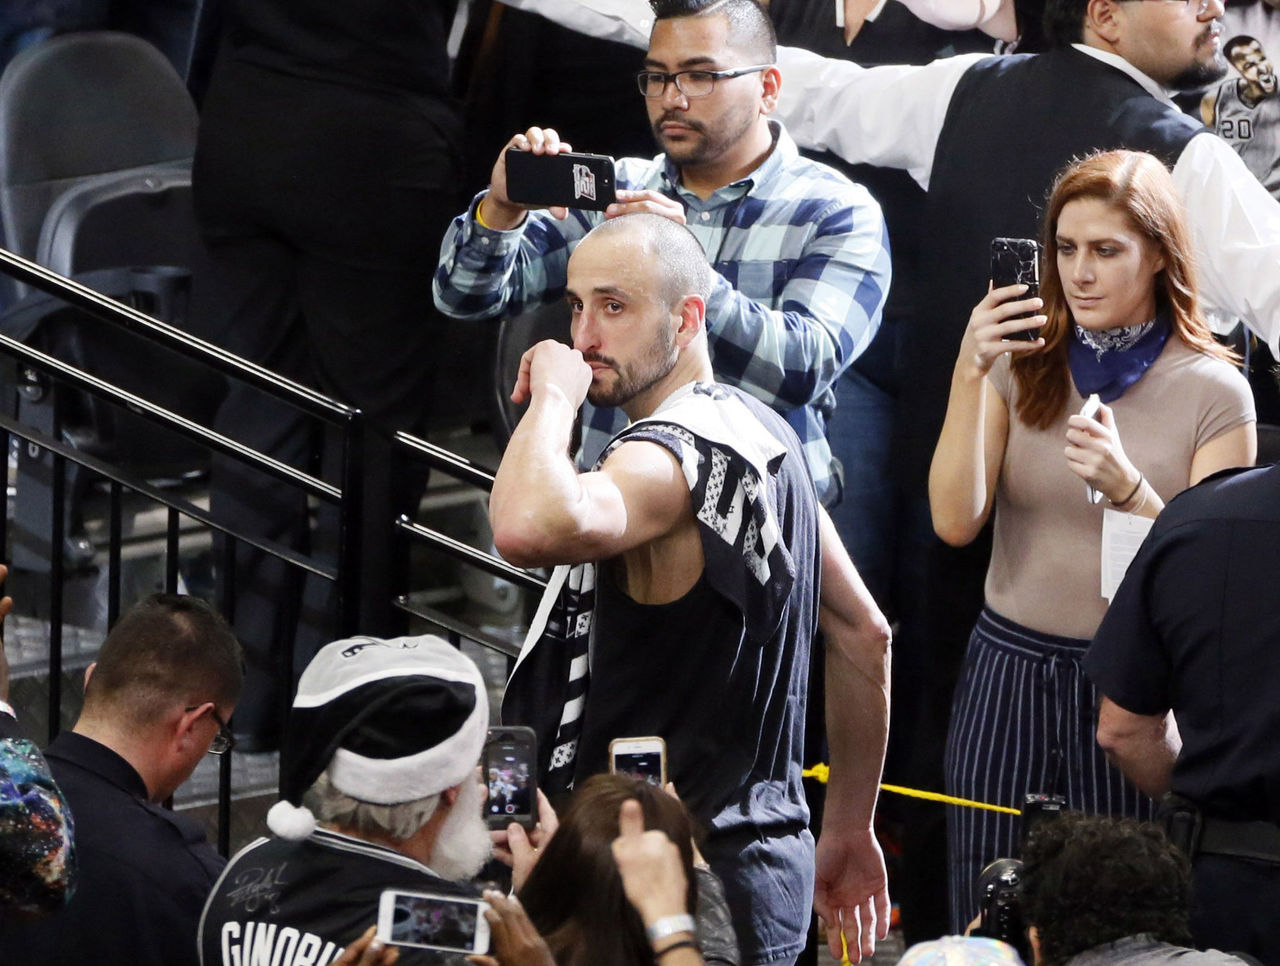 Cropped 2017 05 23t041257z 1912220518 nocid rtrmadp 3 nba playoffs golden state warriors at san antonio spurs